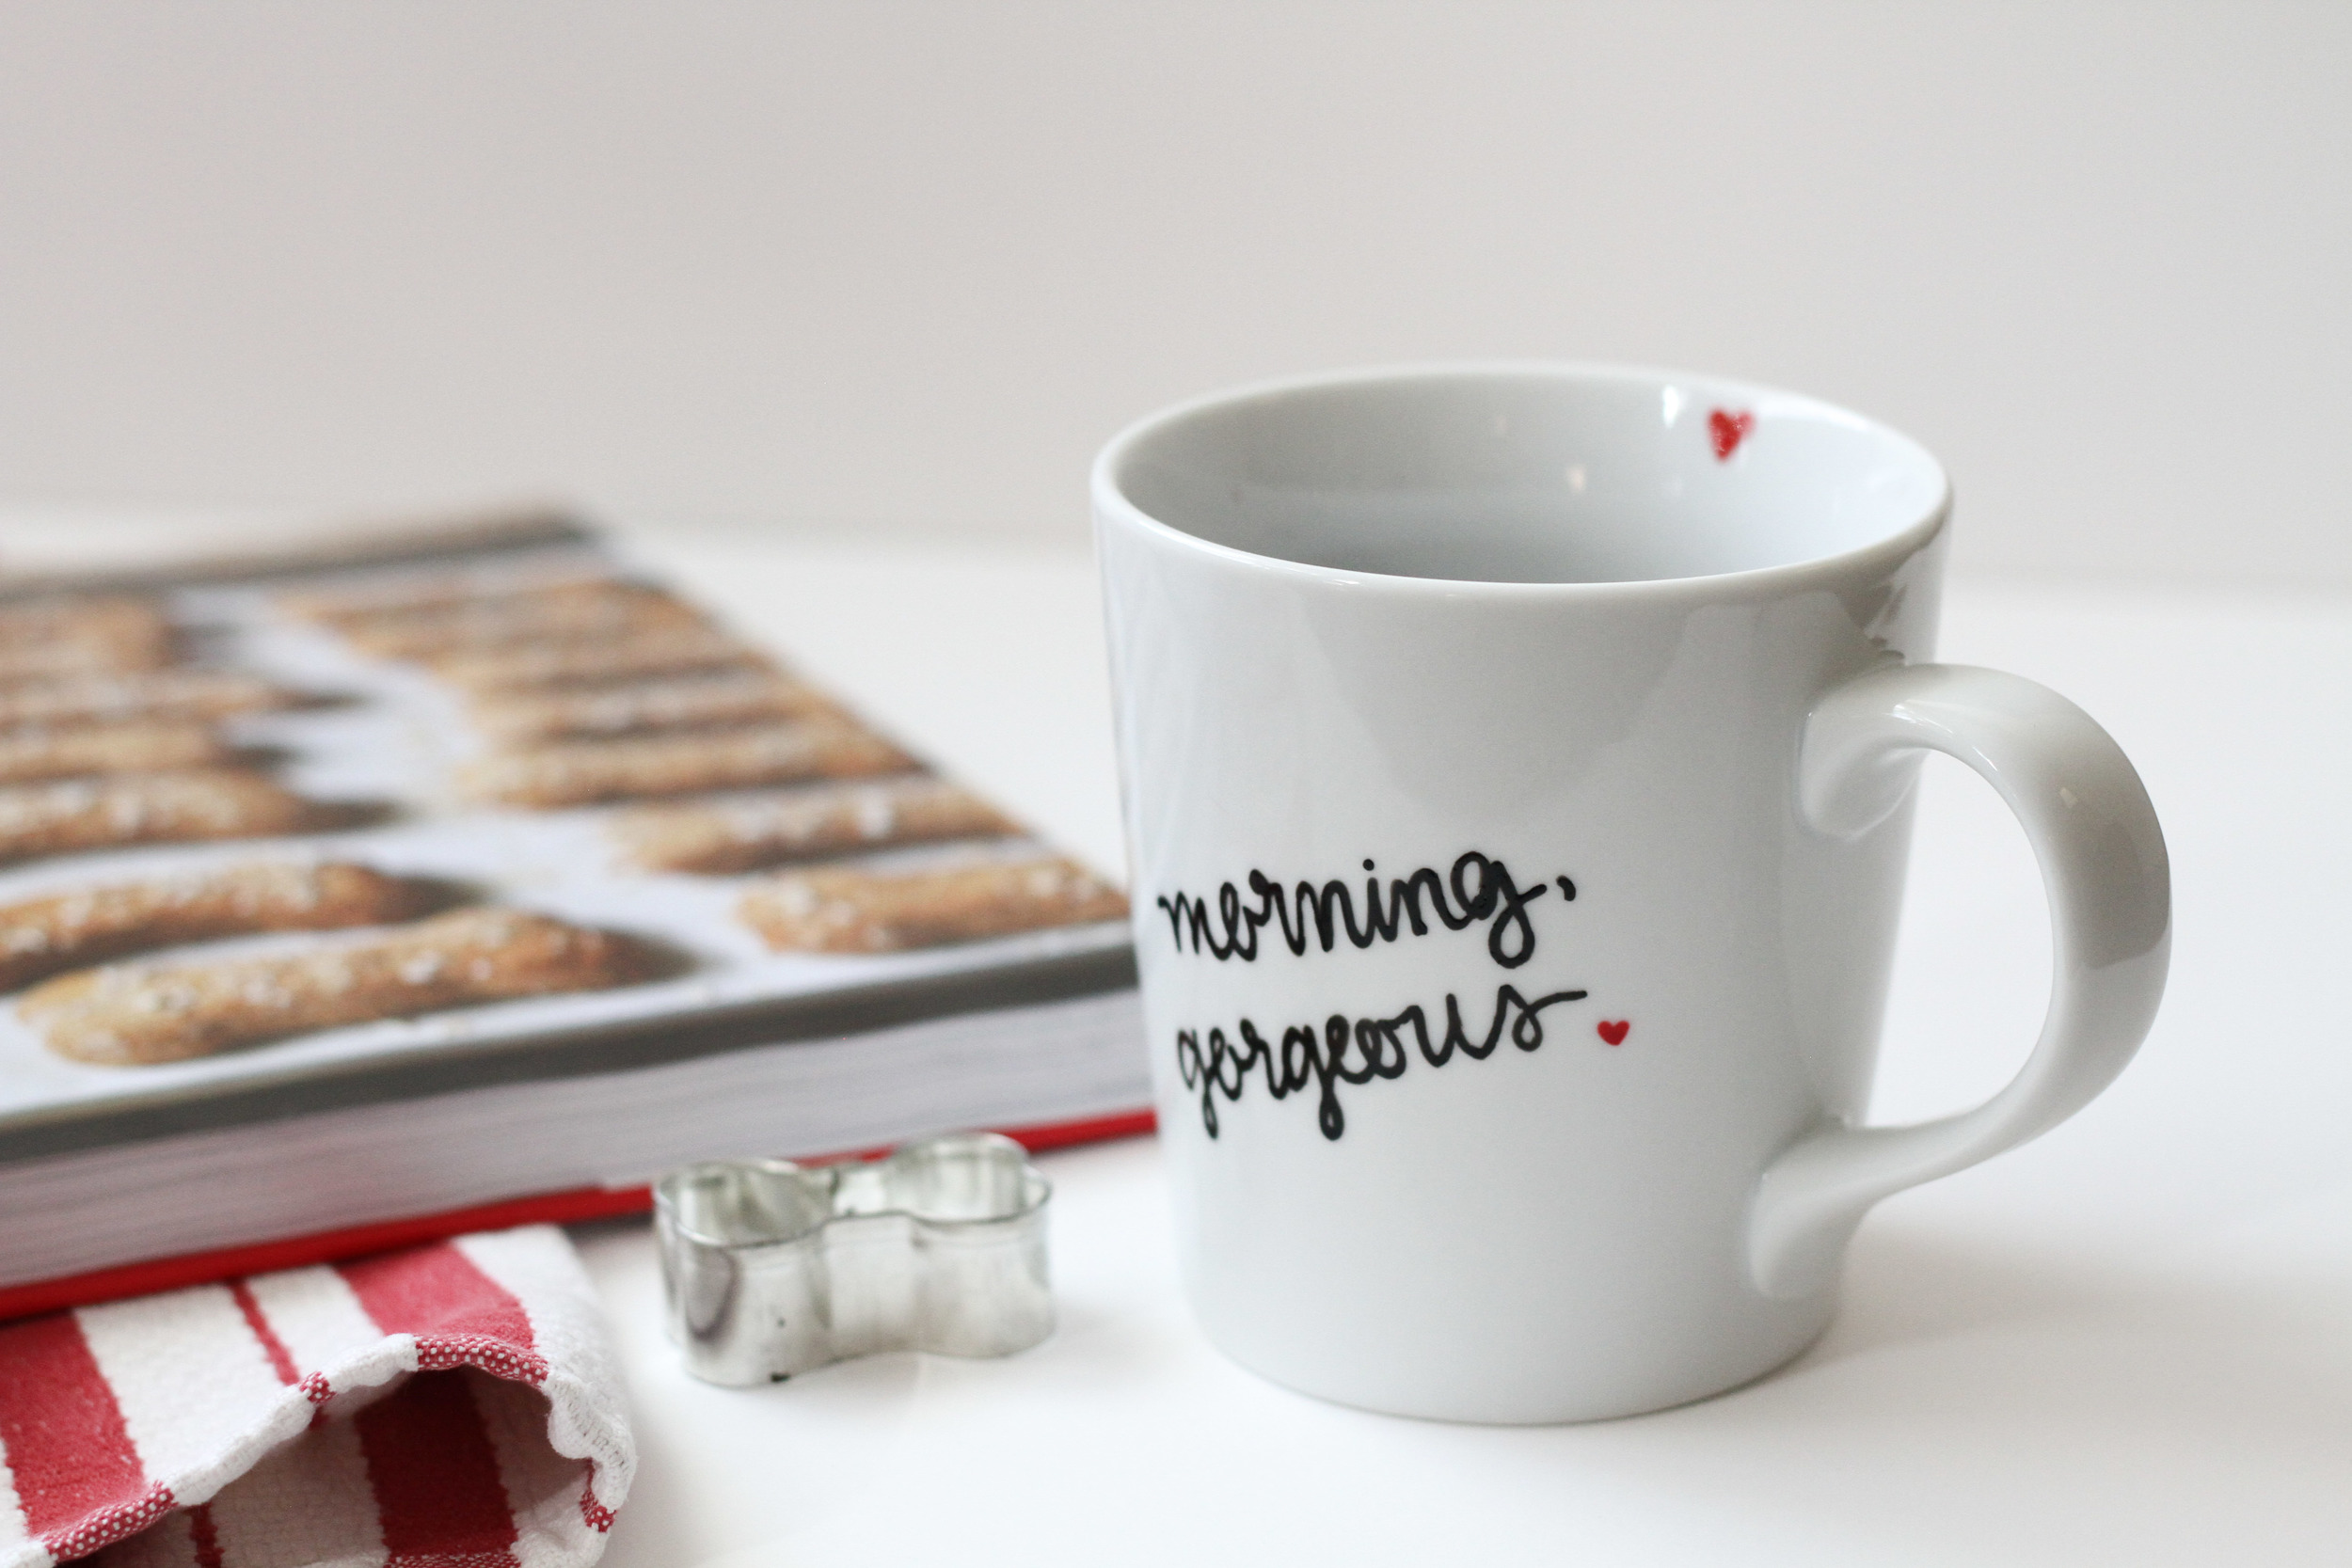 Interested in where you can find this mug? Check out my favorite local mug artist,  Grey Skies Blue  on Etsy!